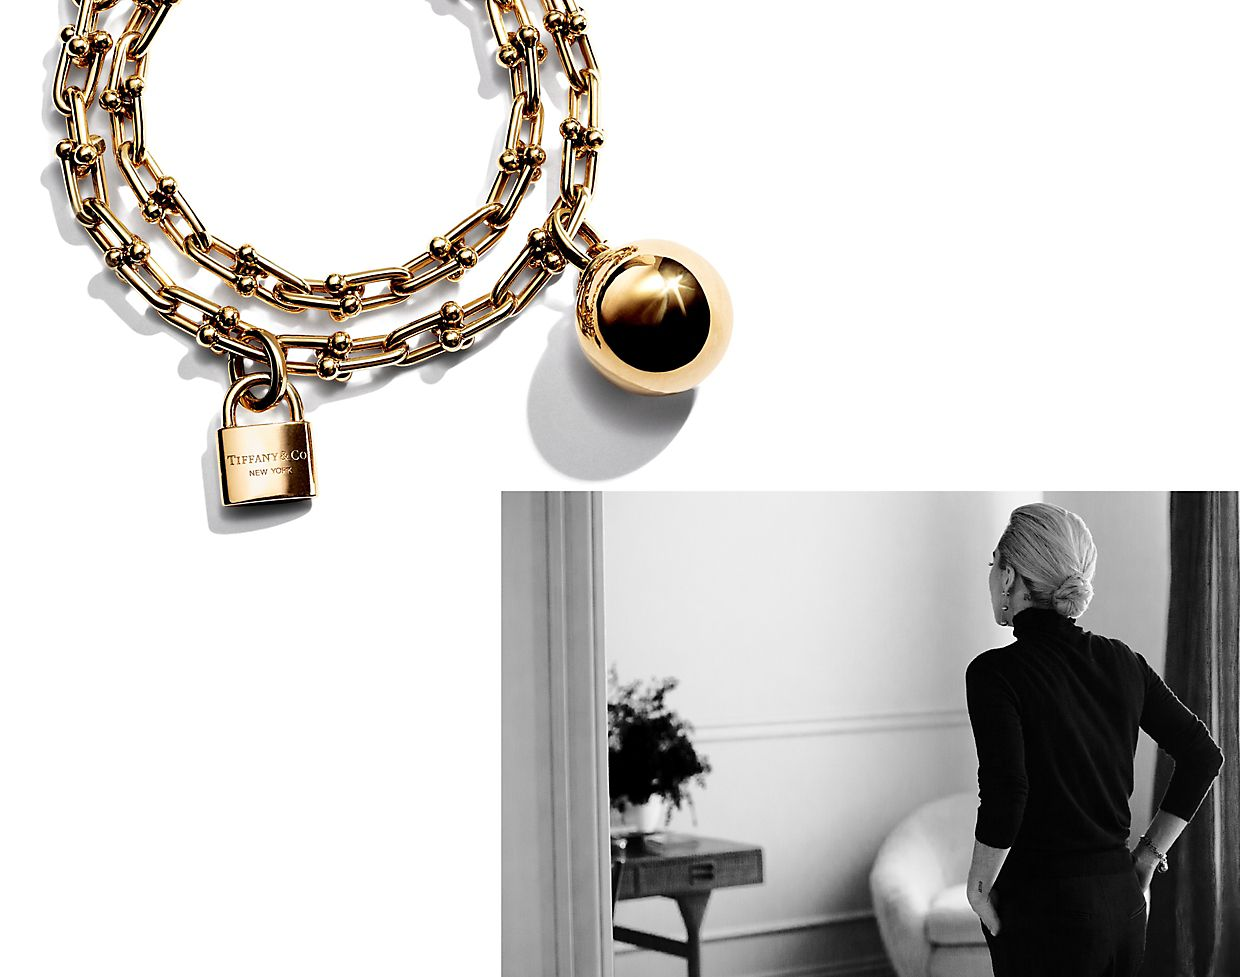 The New Tiffany HardWear Jewelry Collection Pays Tribute to the Strength of the Modern Woman